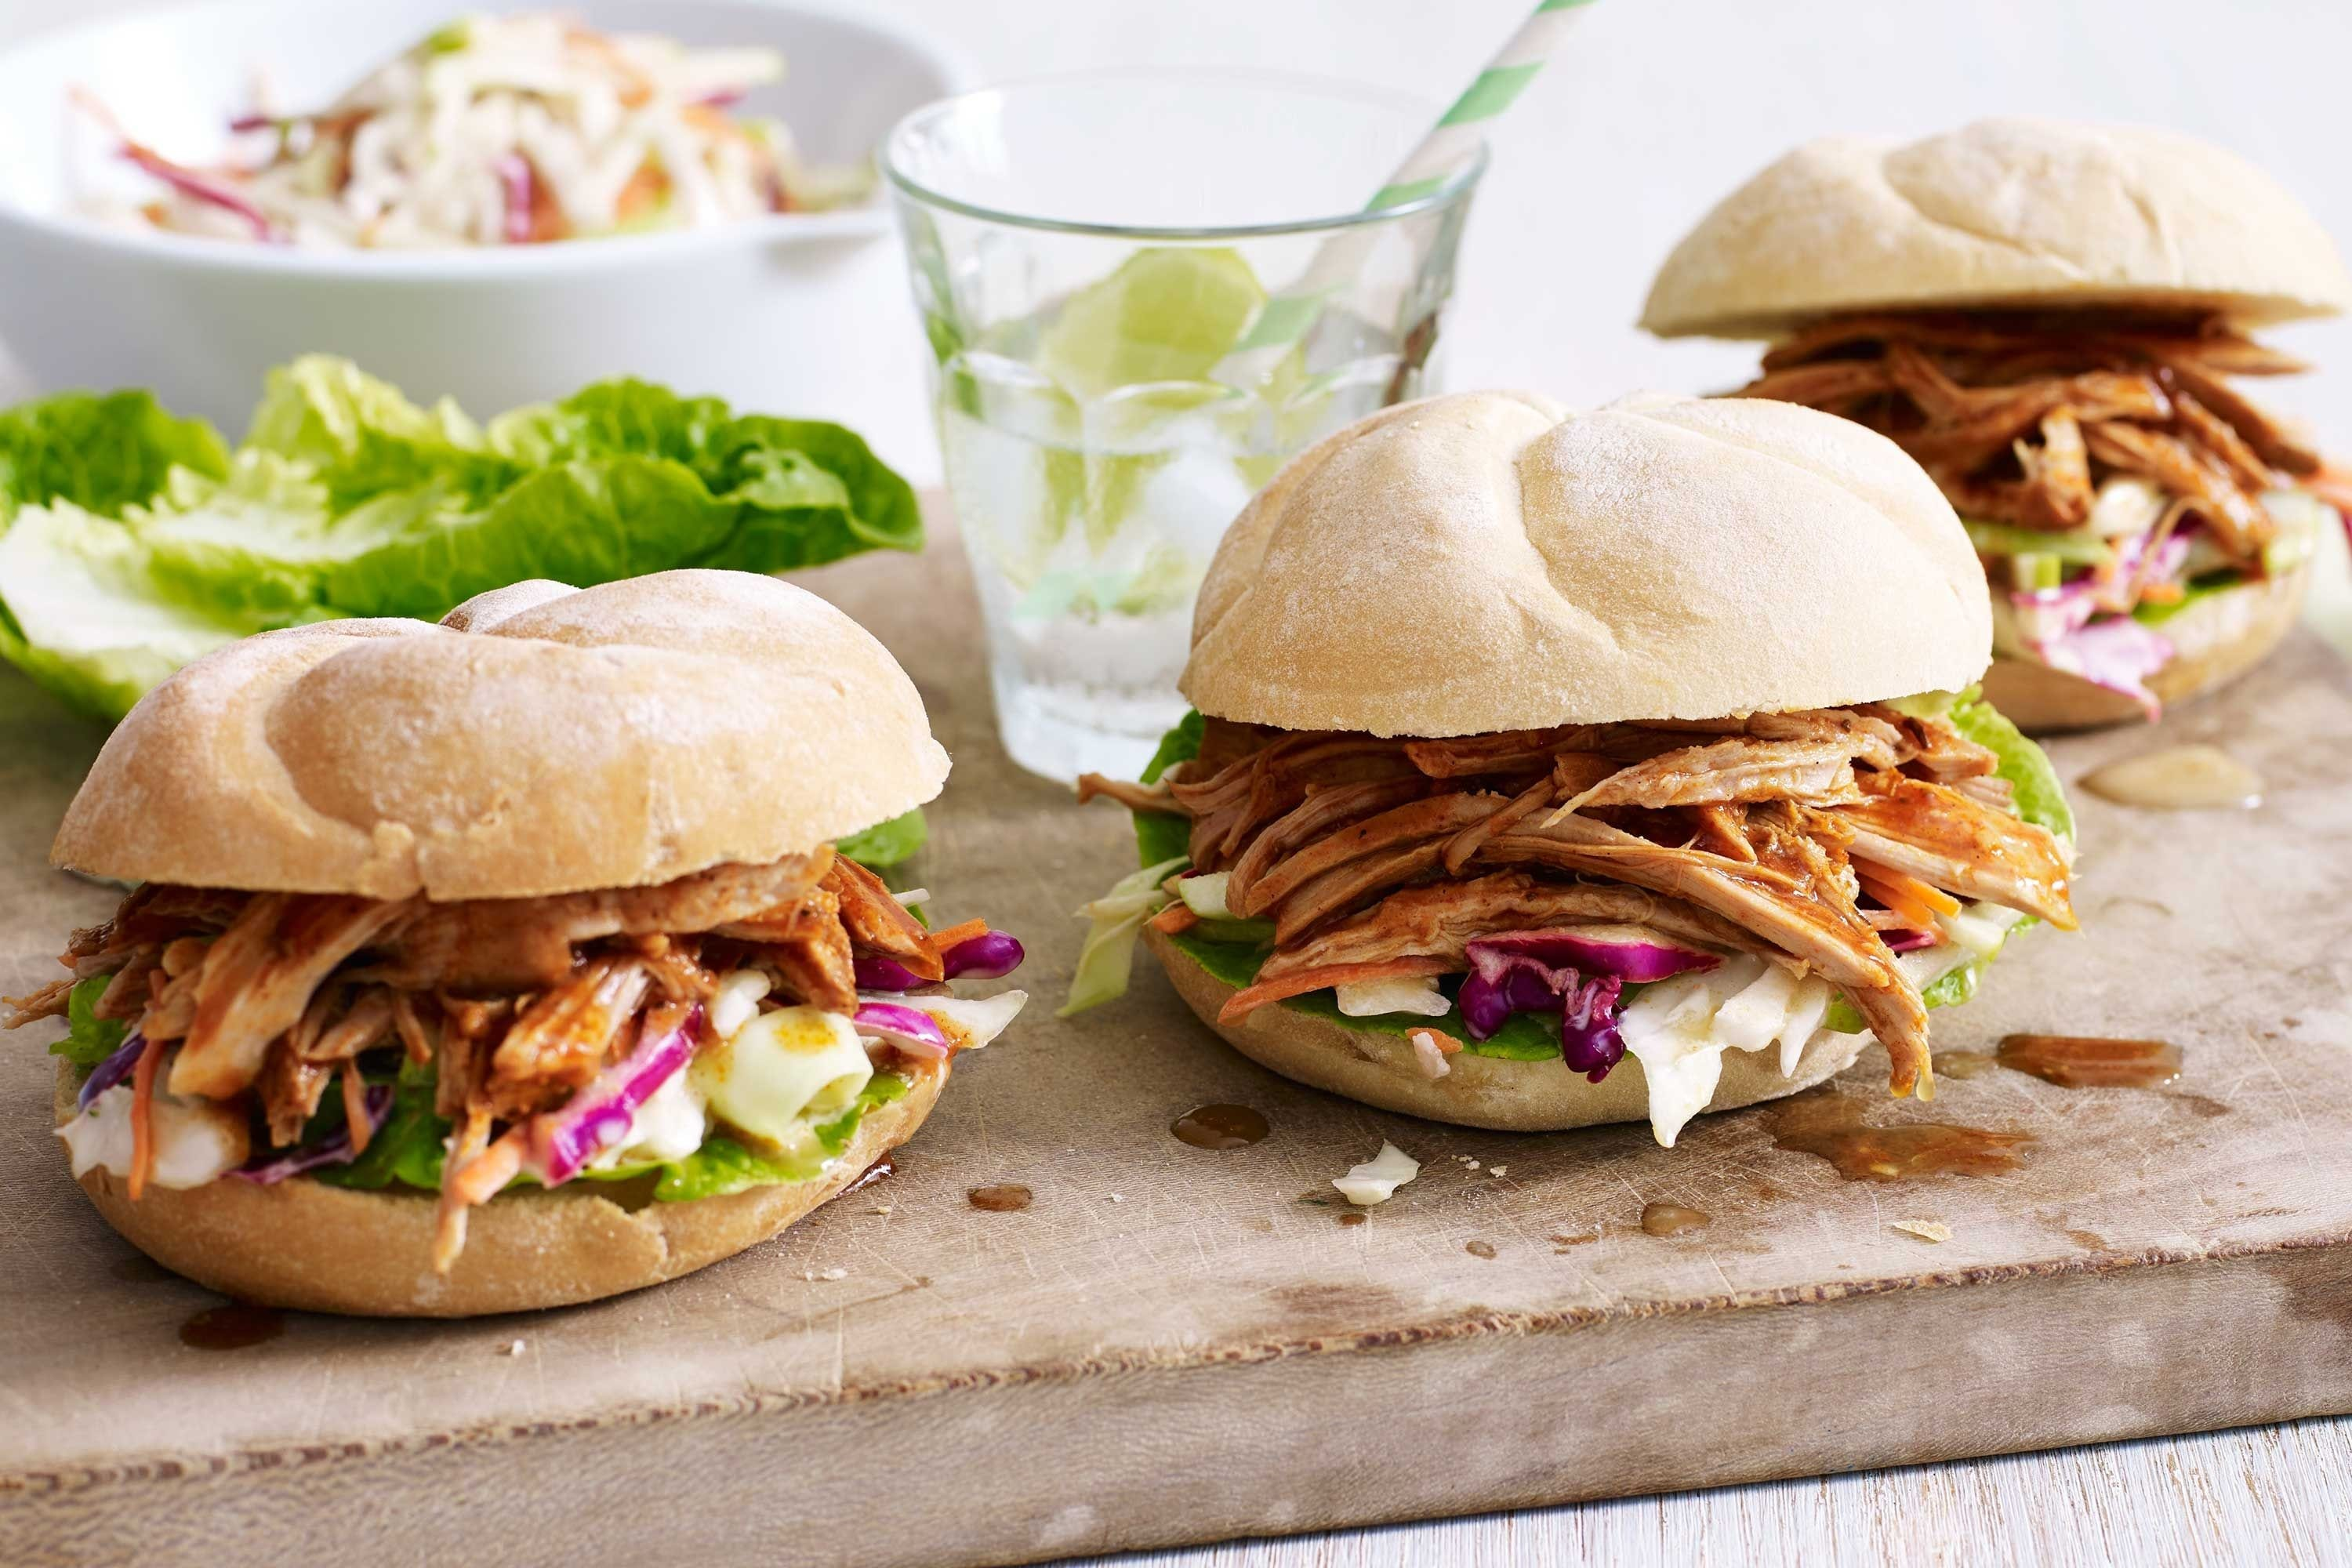 Maple Pulled Pork Burgers with Apple Slaw Recipe